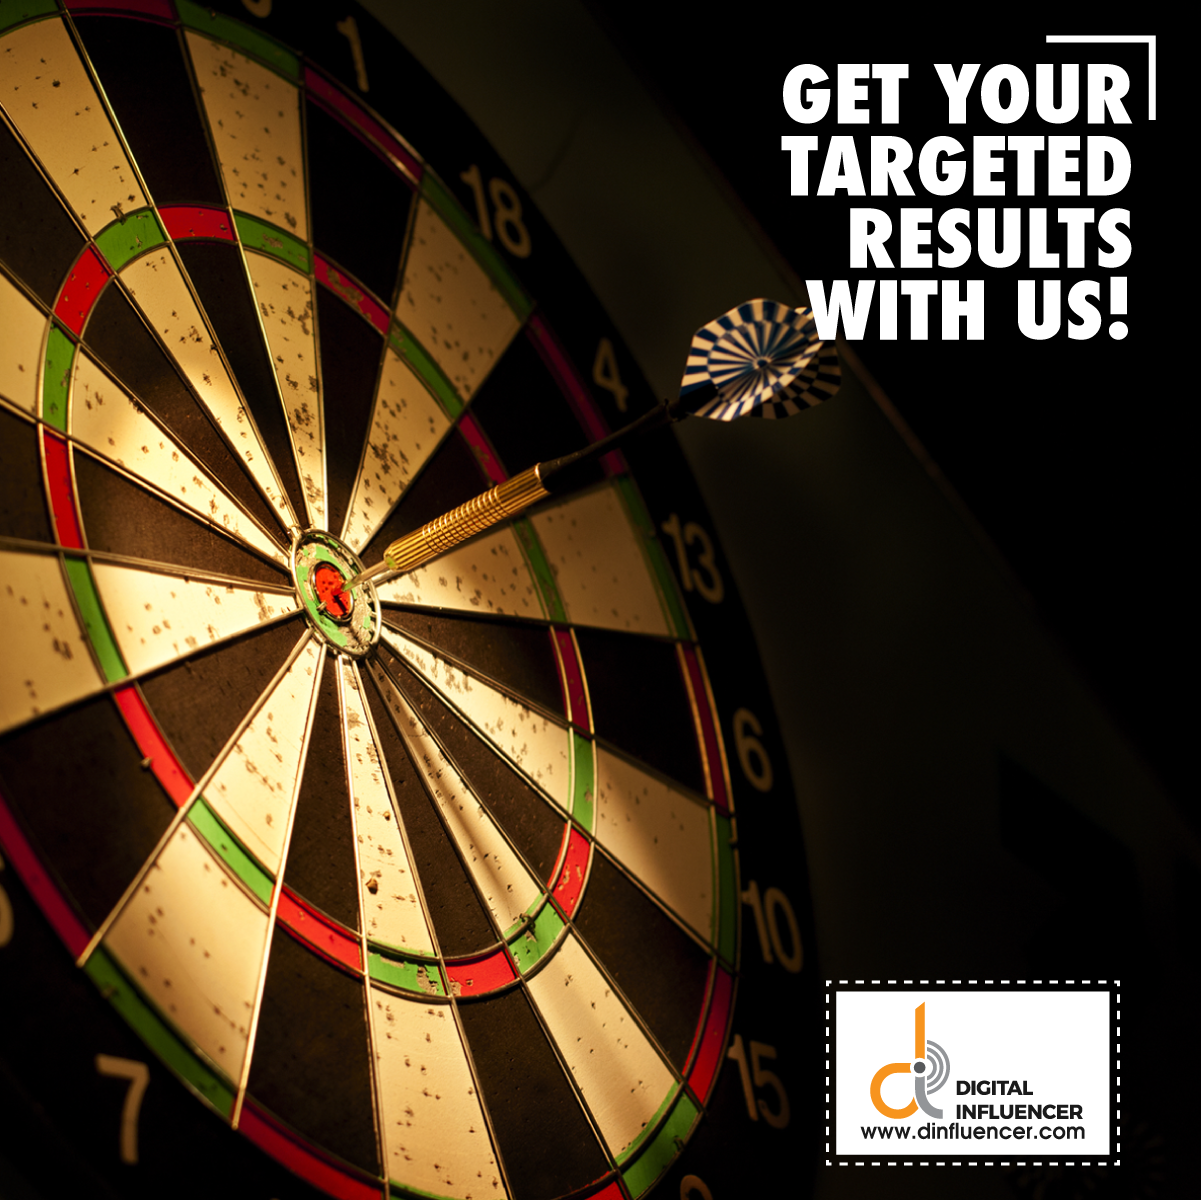 We locate the ideal influencers who will engage and inspire their audience to enhance your brand. Get in touch with us for customized influencer marketing campaigns: http://www.dinfluencer.com/